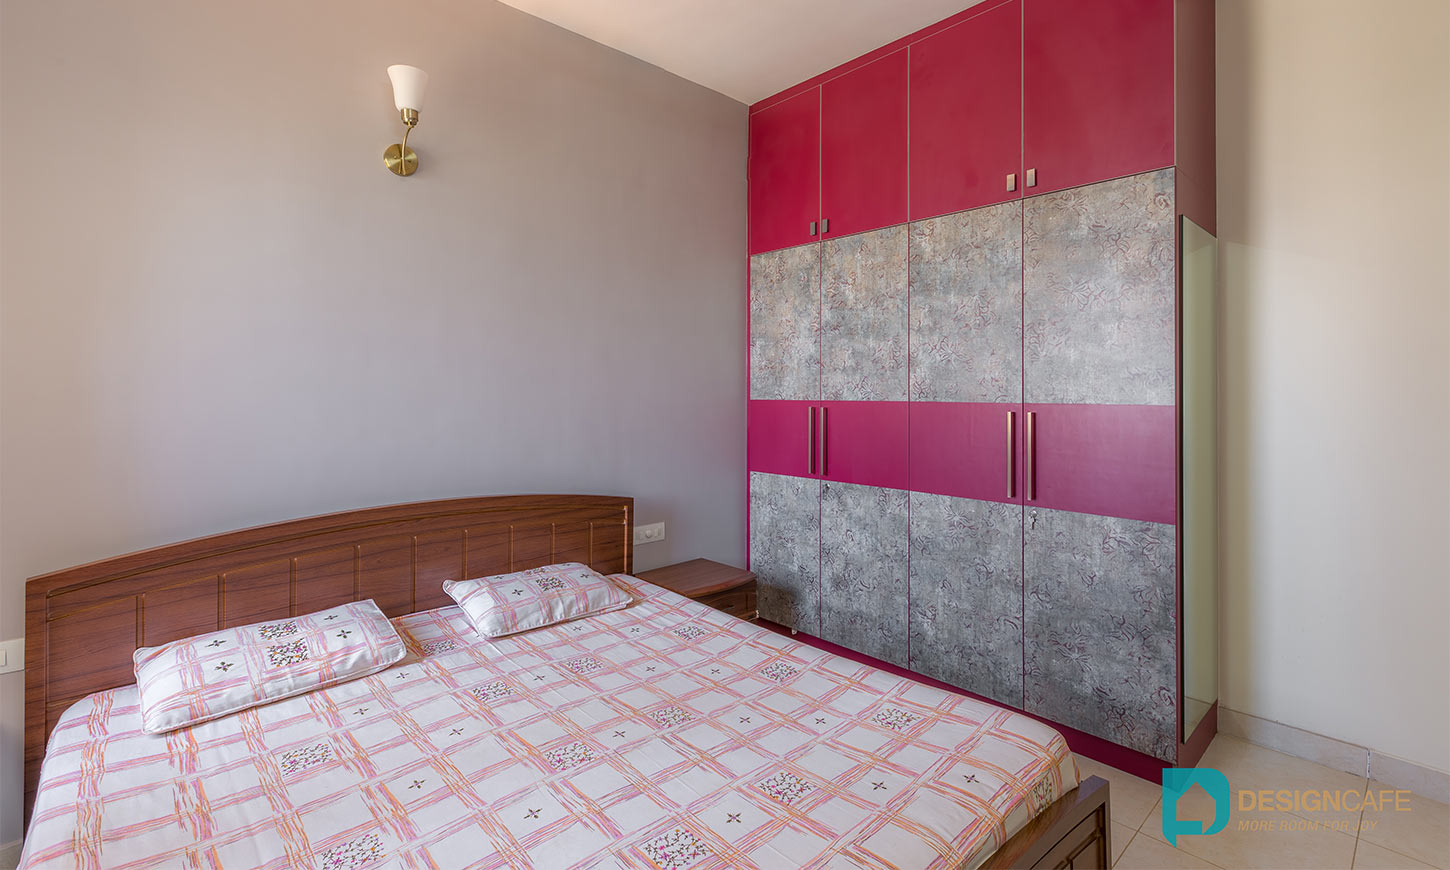 Bedroom designed by design cafe which is one of the best home interiors bangalore